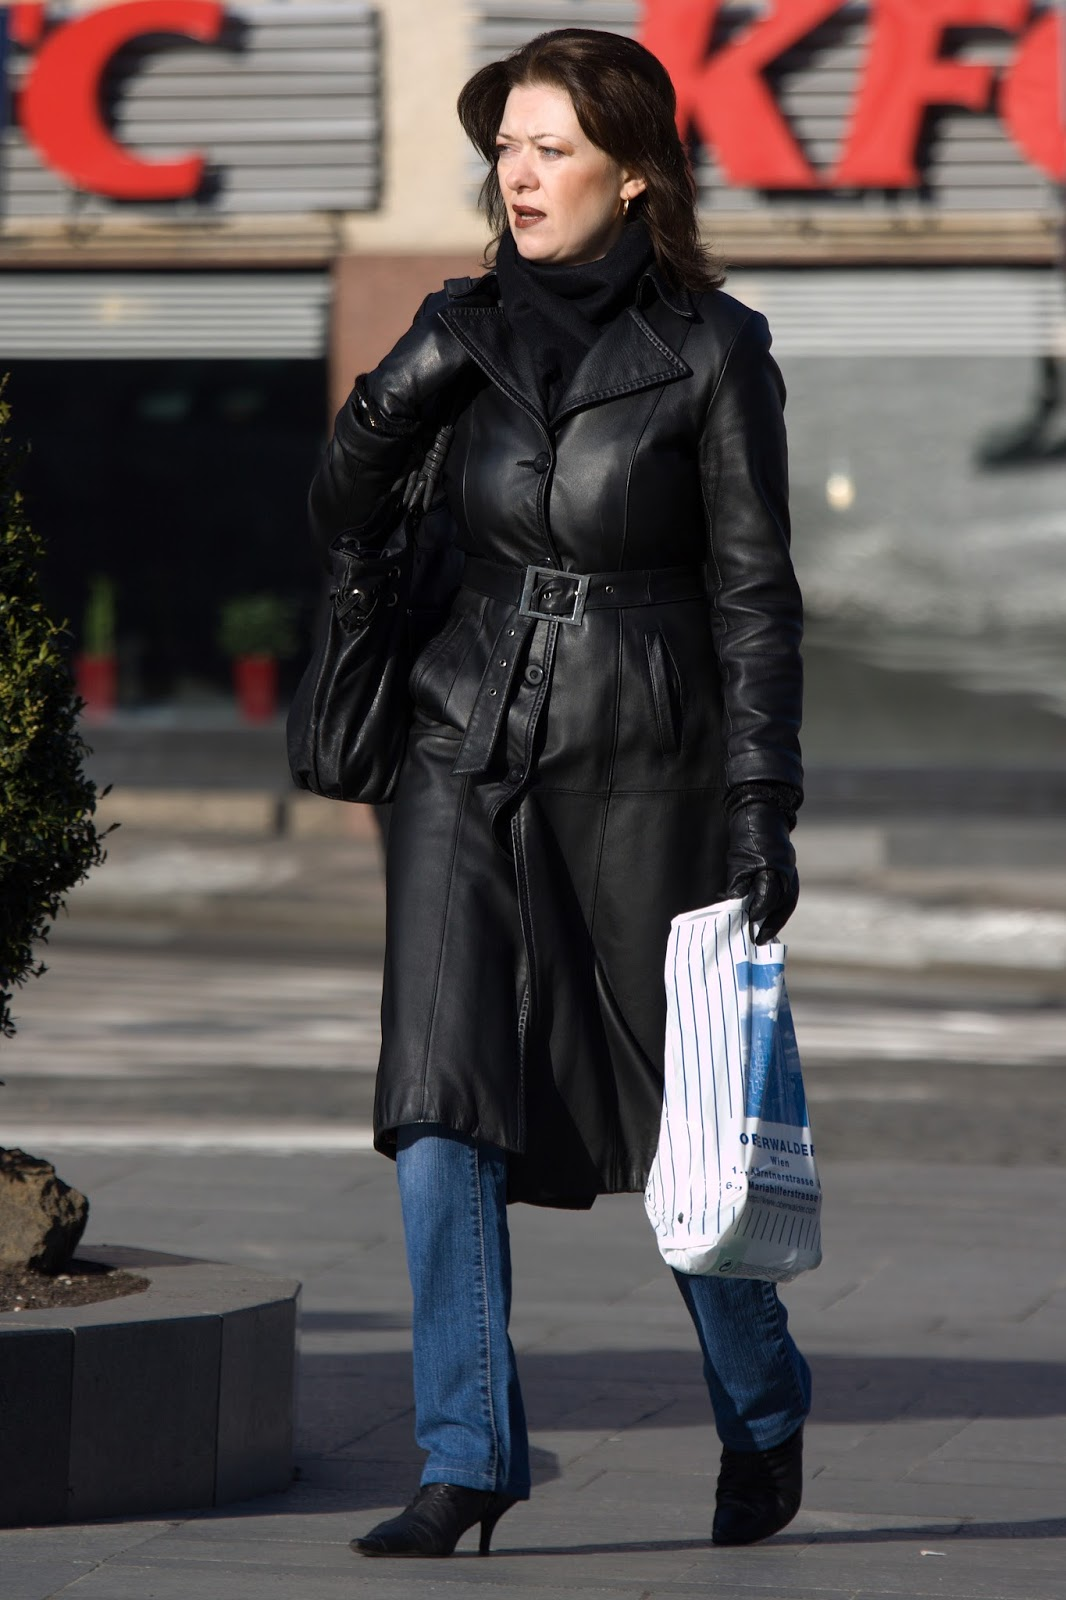 Leather Coat Daydreams: A pretty woman in a leather coat